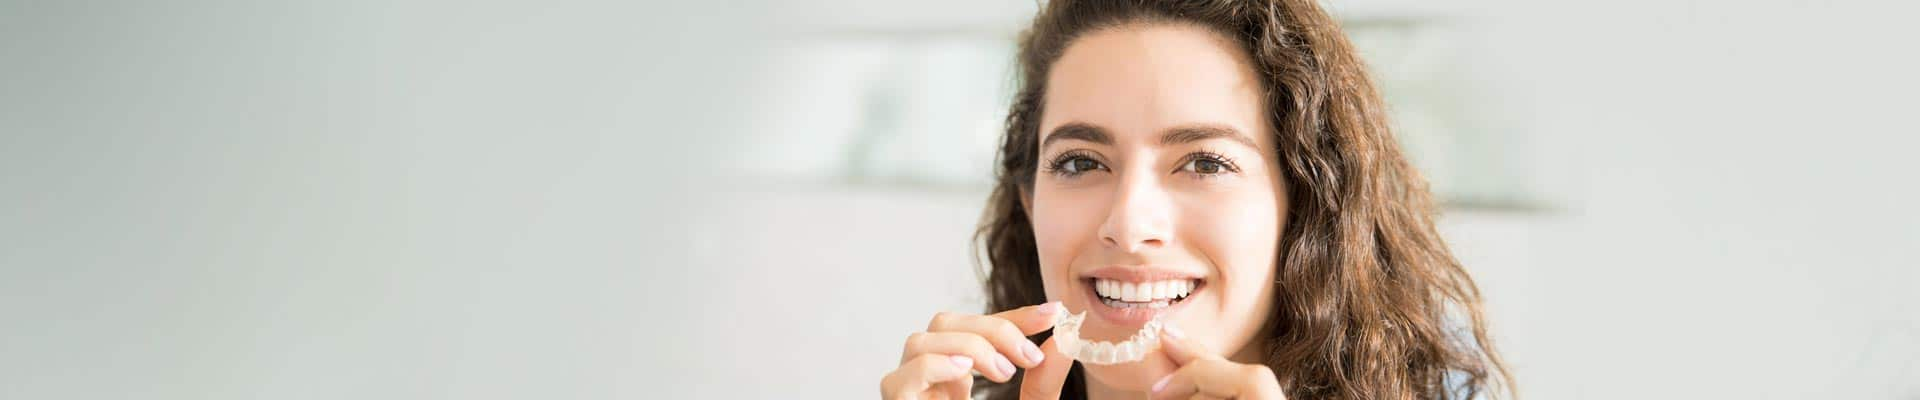 Invisalign Nord Orthodontics Orem Eagle Mountain UT